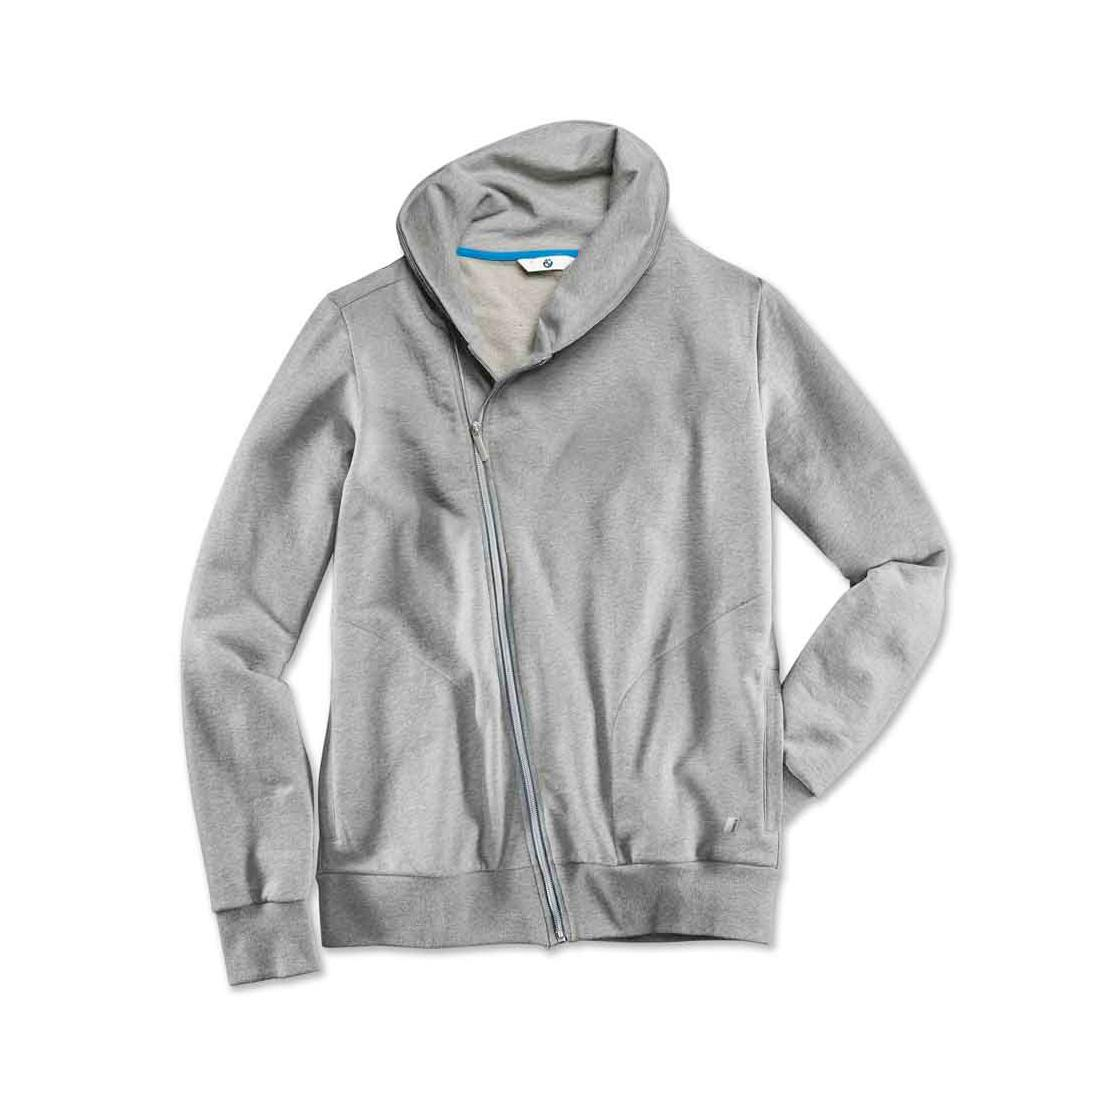 BMW i Men's Sweatshirt Jacket